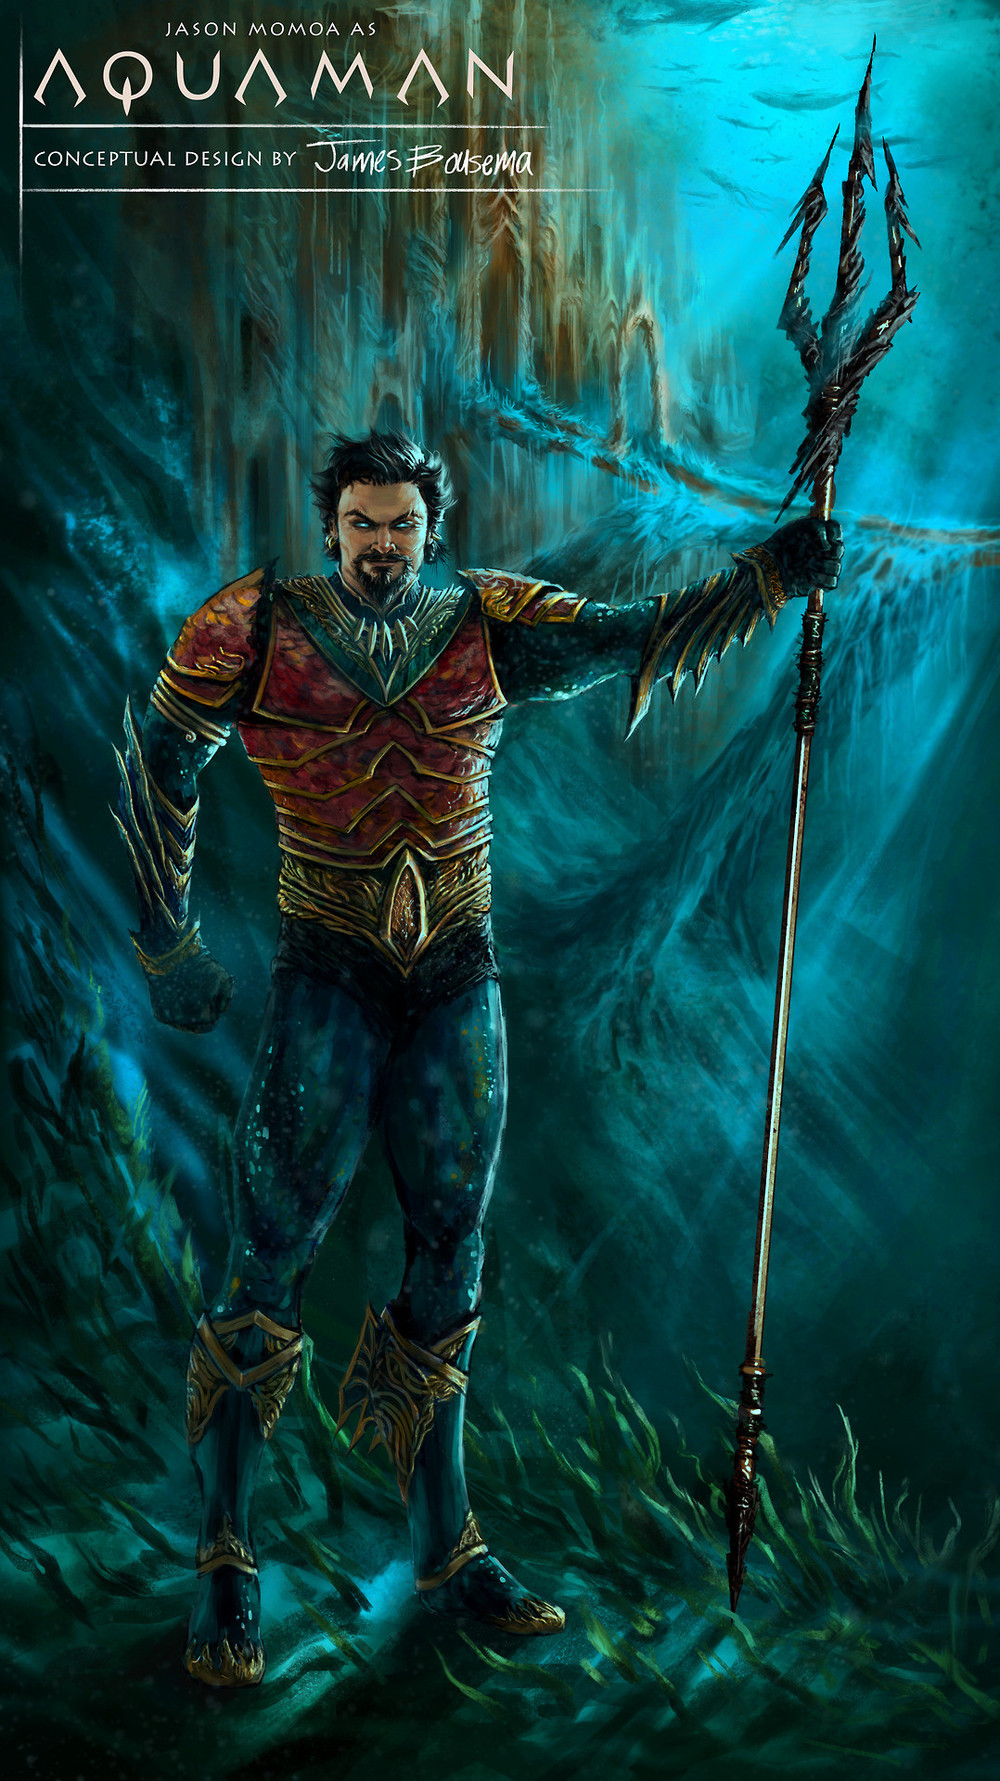 fan-made-art-imagines-jason-momoa-as-aquaman